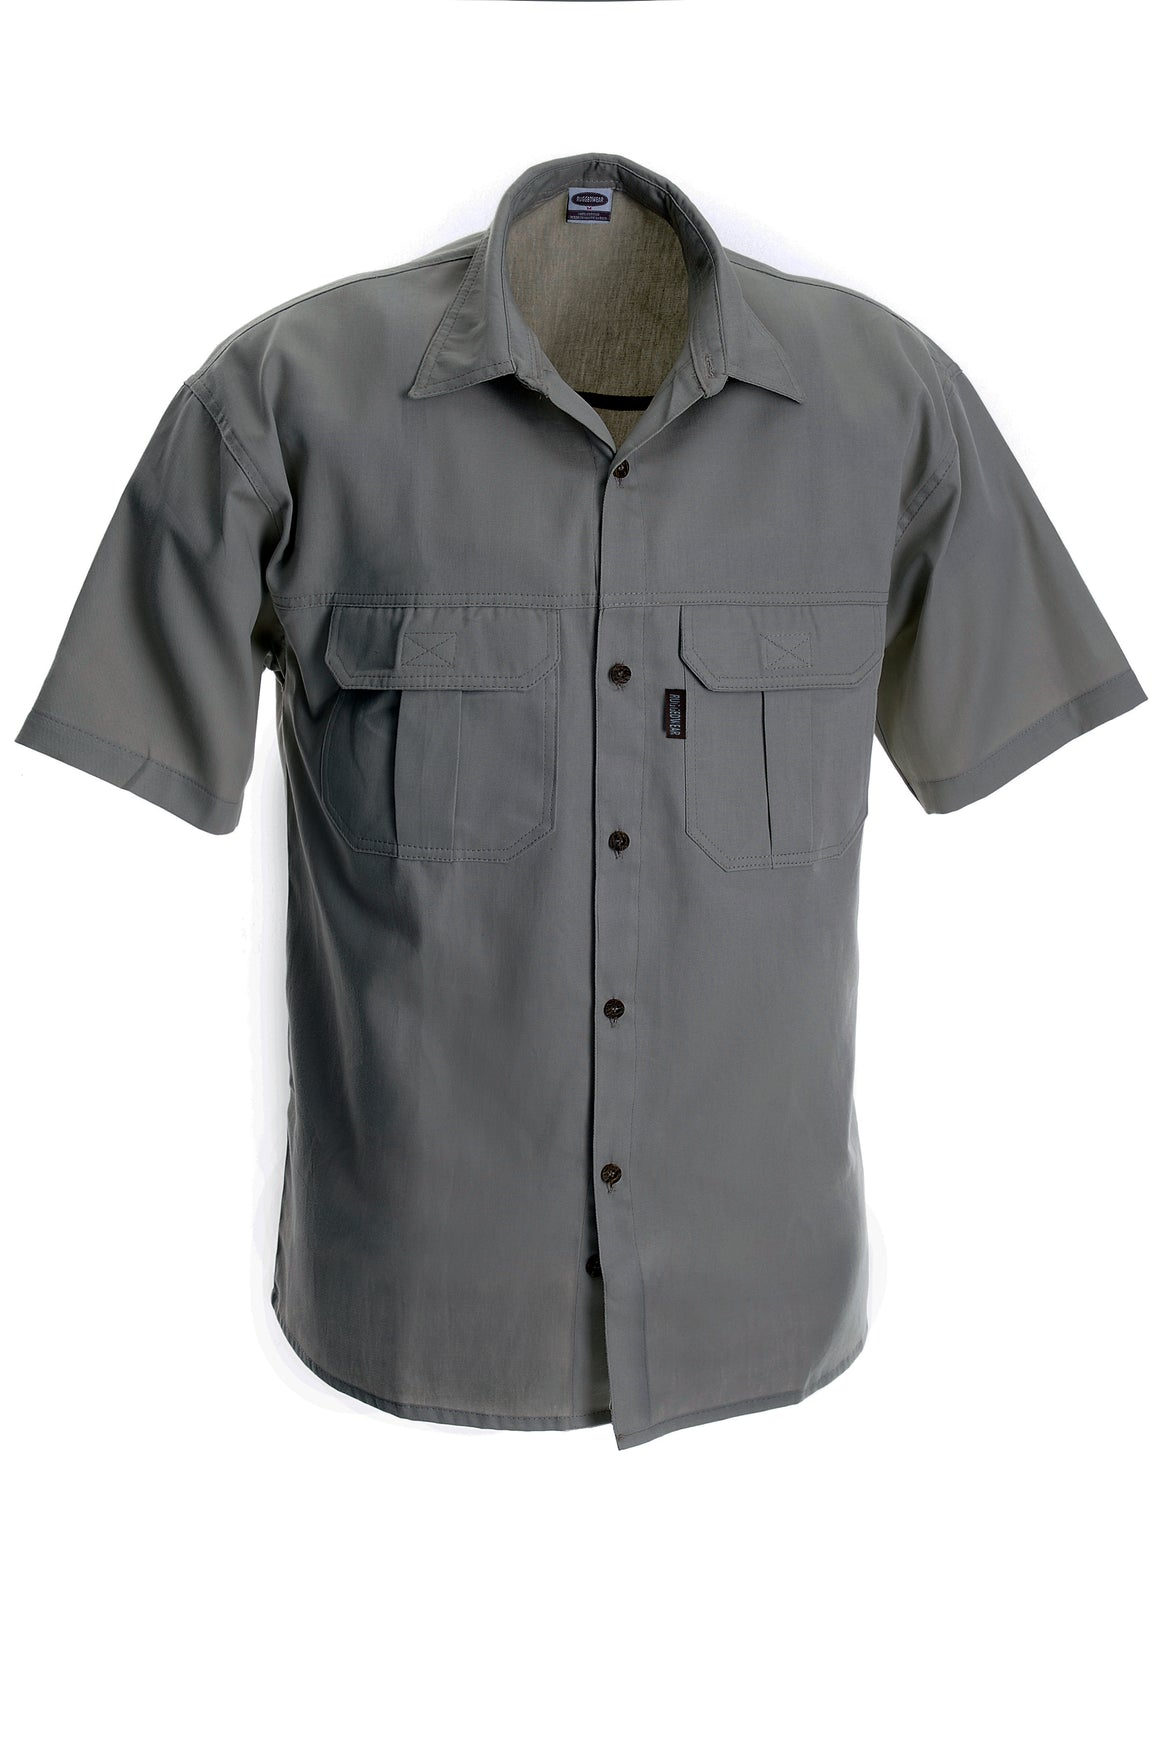 RuggedWear - Serengeti - Short Sleeve Olive Shirt